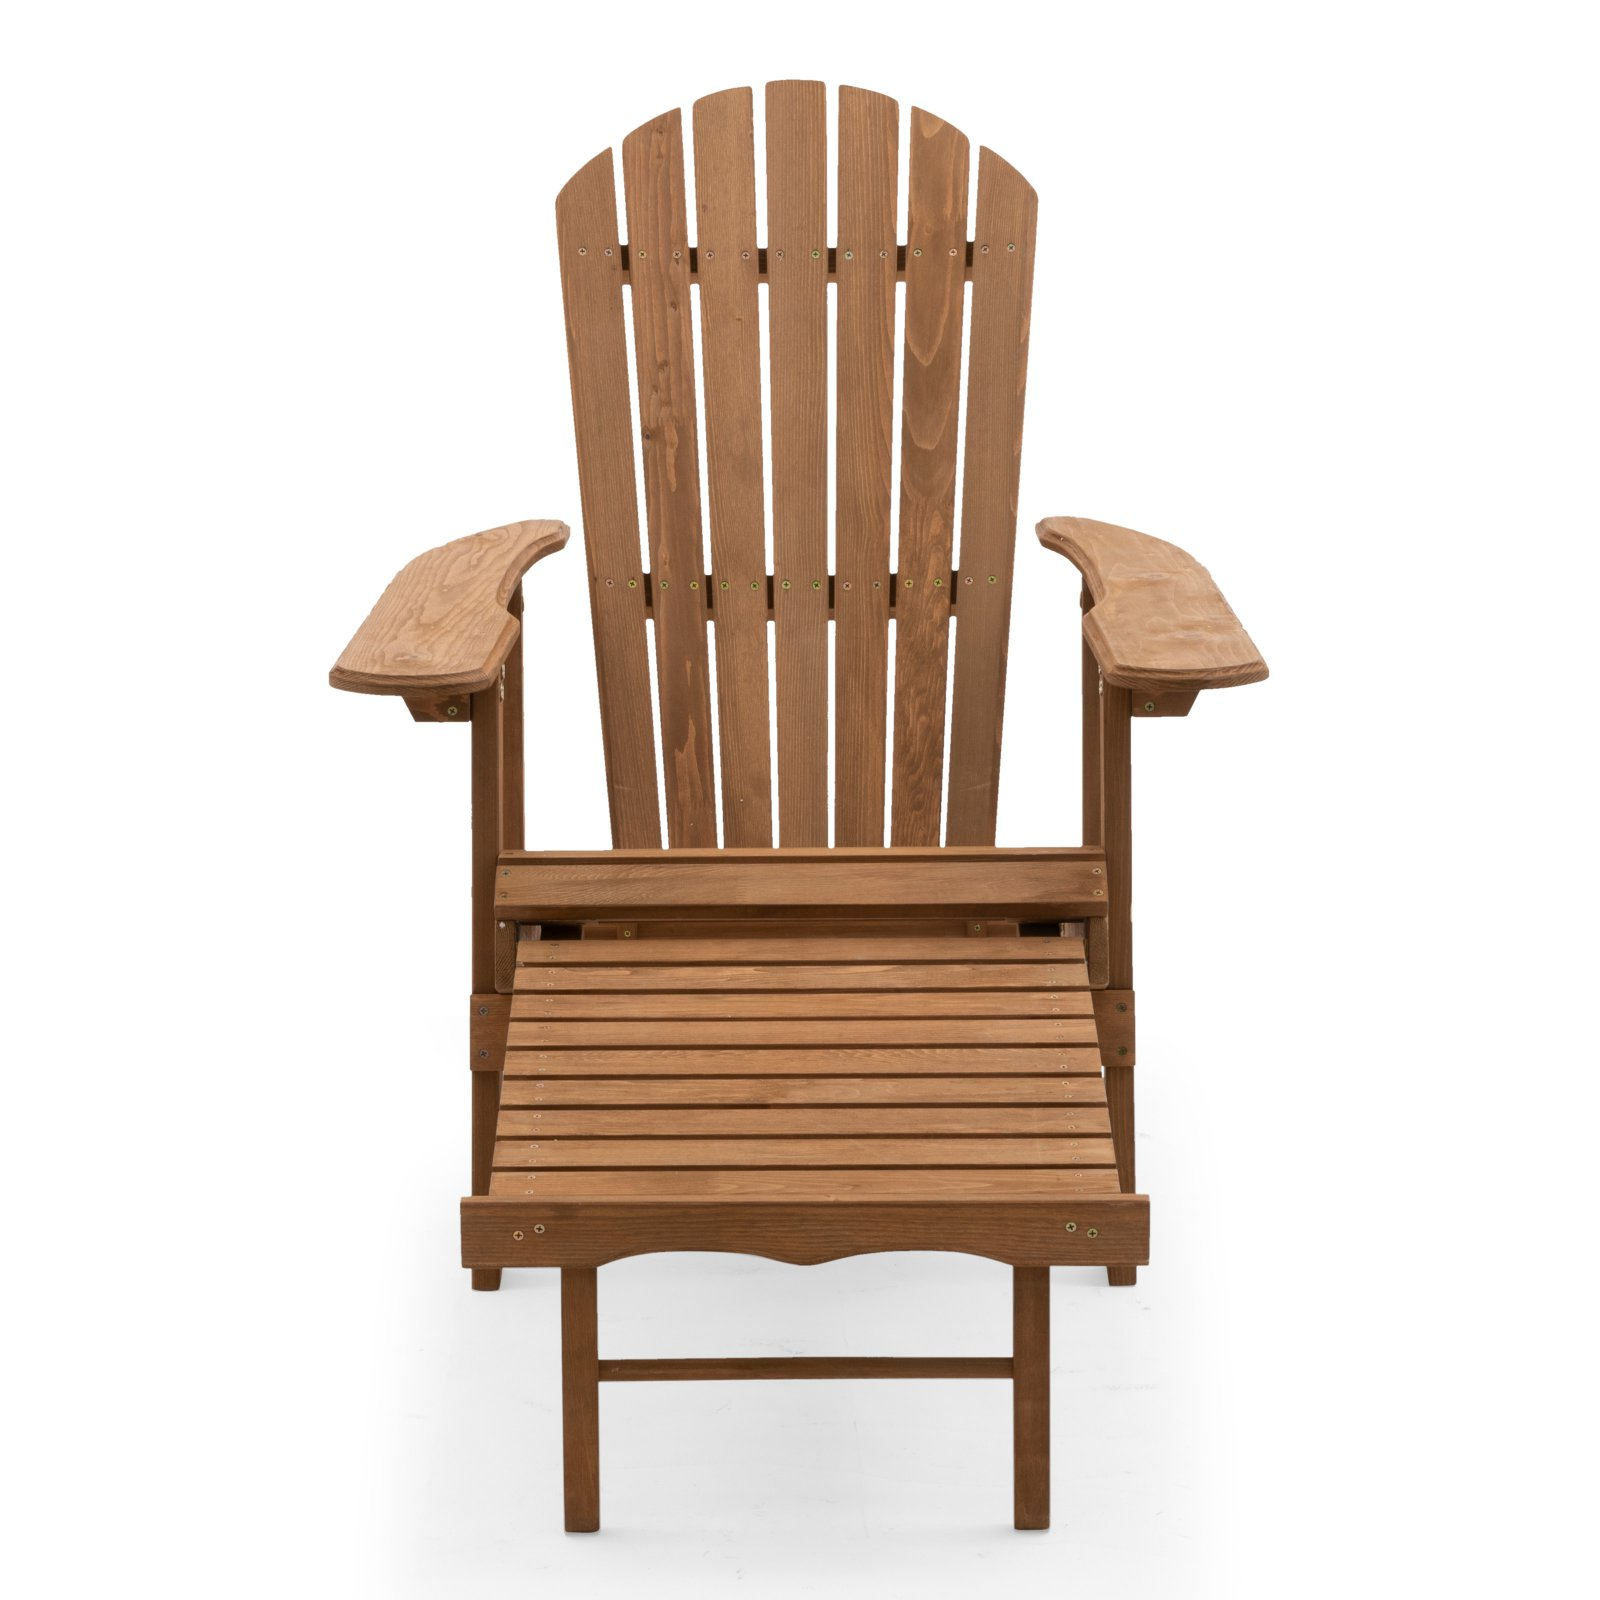 Coral Coast Hubbard Big Daddy Reclining Adirondack Chair